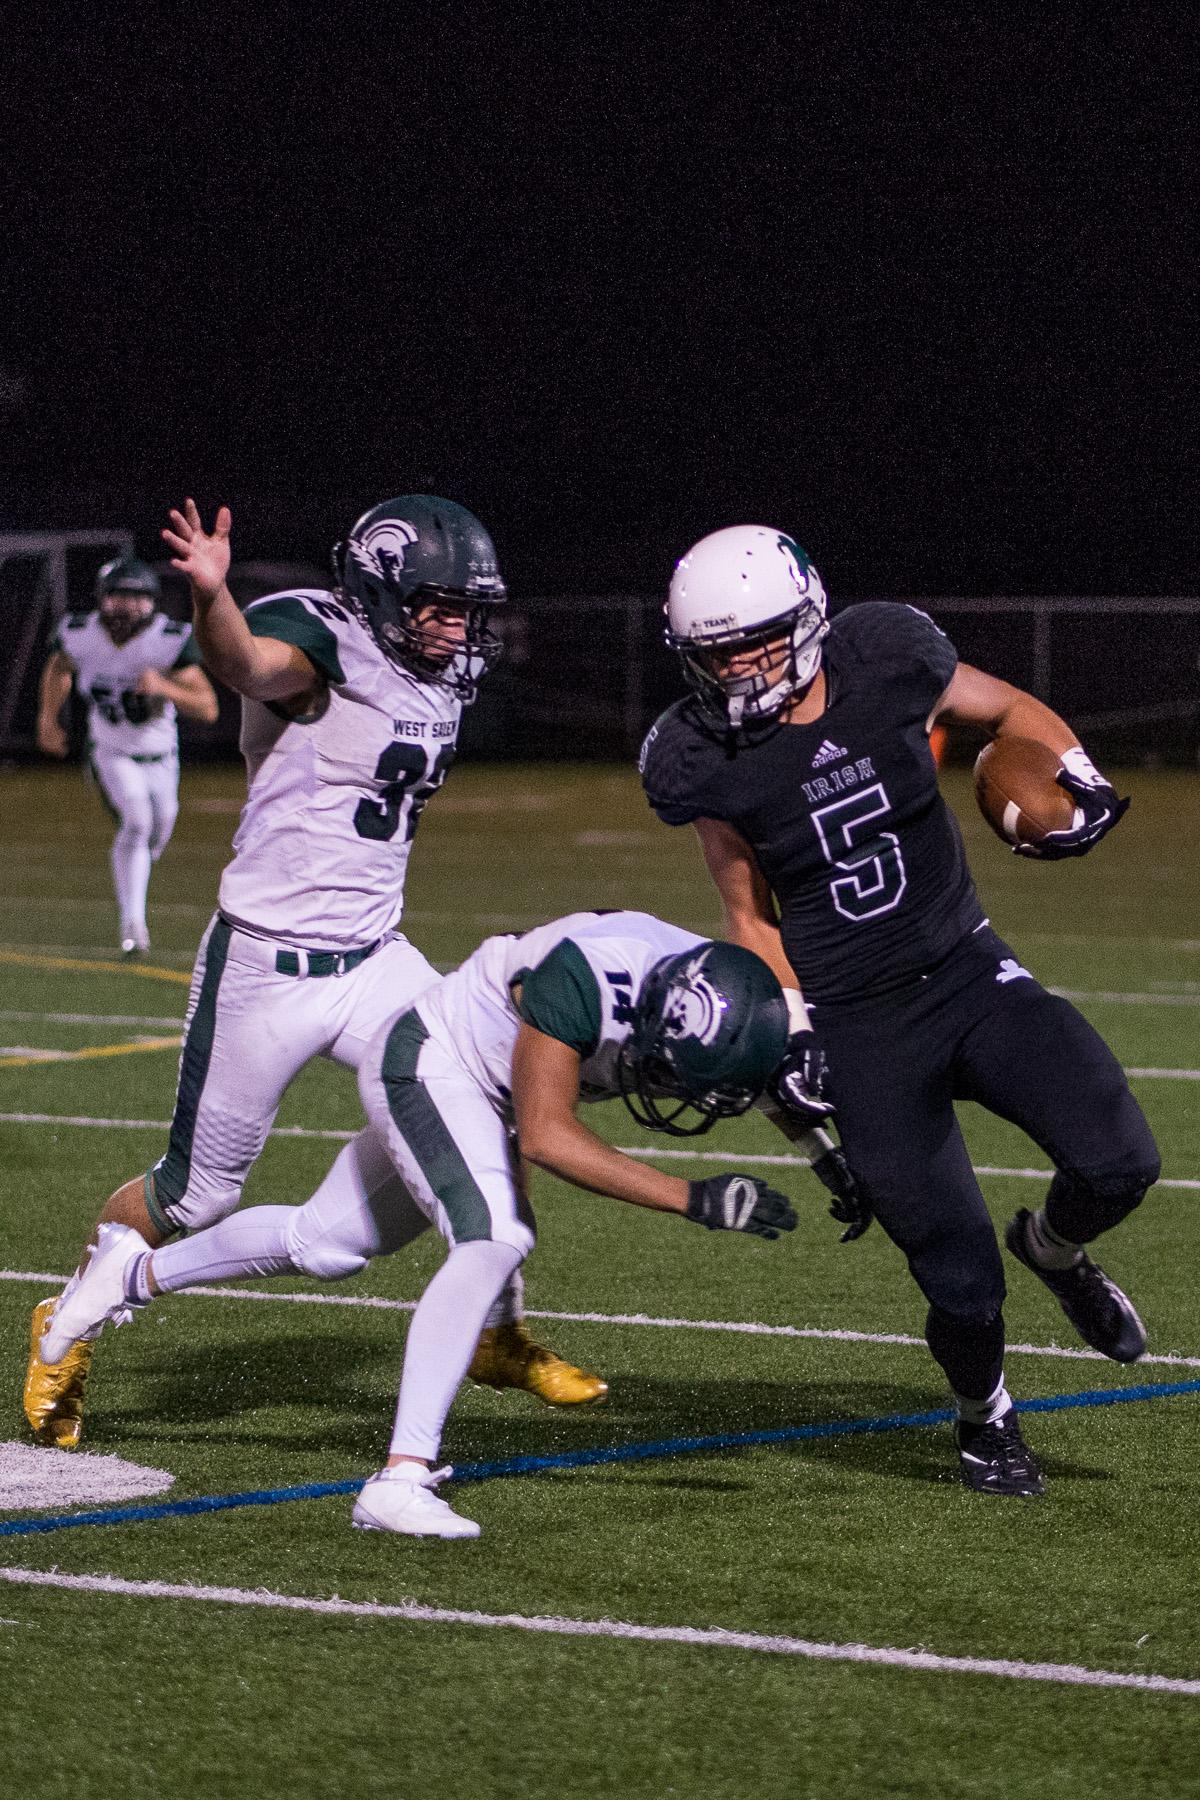 Sheldon Irish wide receiver Patrick Herbert (#5) is pressured by West Salem's defense. On a rainy Monday evening, Sheldon defeated West Salem at home 41 – 7. The game had been postponed until Monday, September 18, due to unhealthy levels of smoke in the air caused by nearby forest fires. Photo by Kit MacAvoy, Oregon News Lab